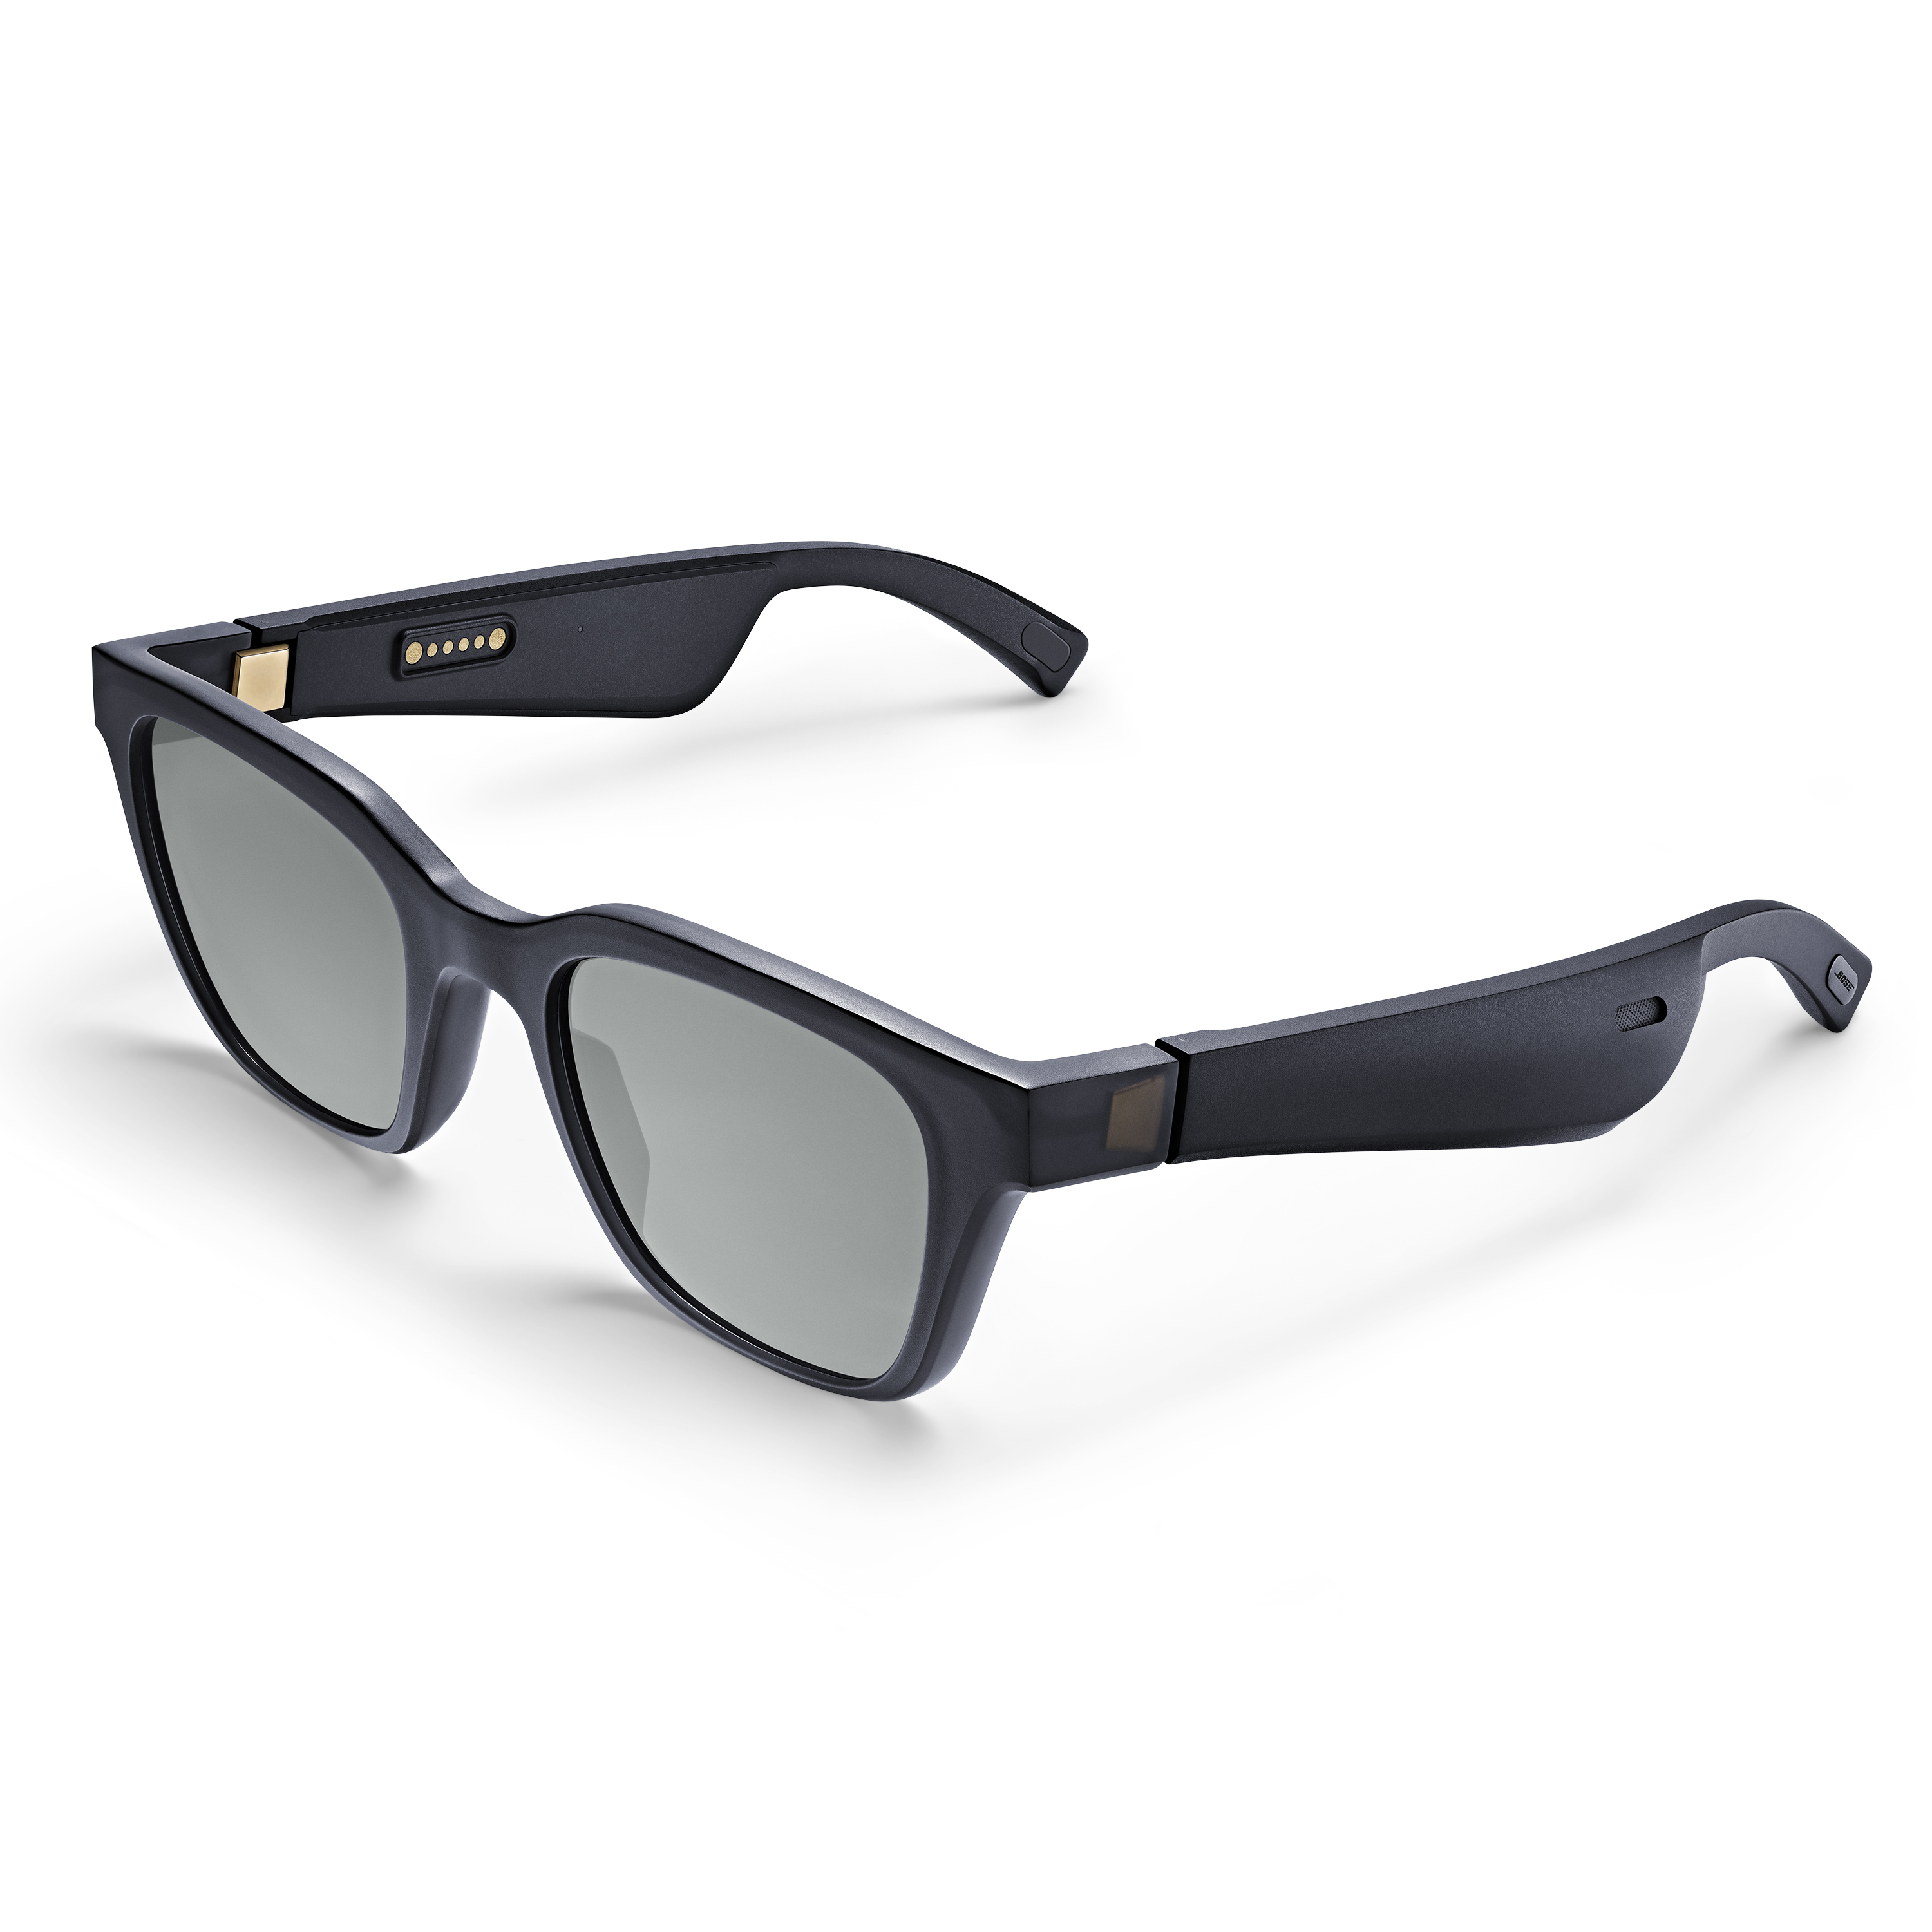 Bose is dabbling in  audio AR  with a pair of sunglasses  ef1959d67